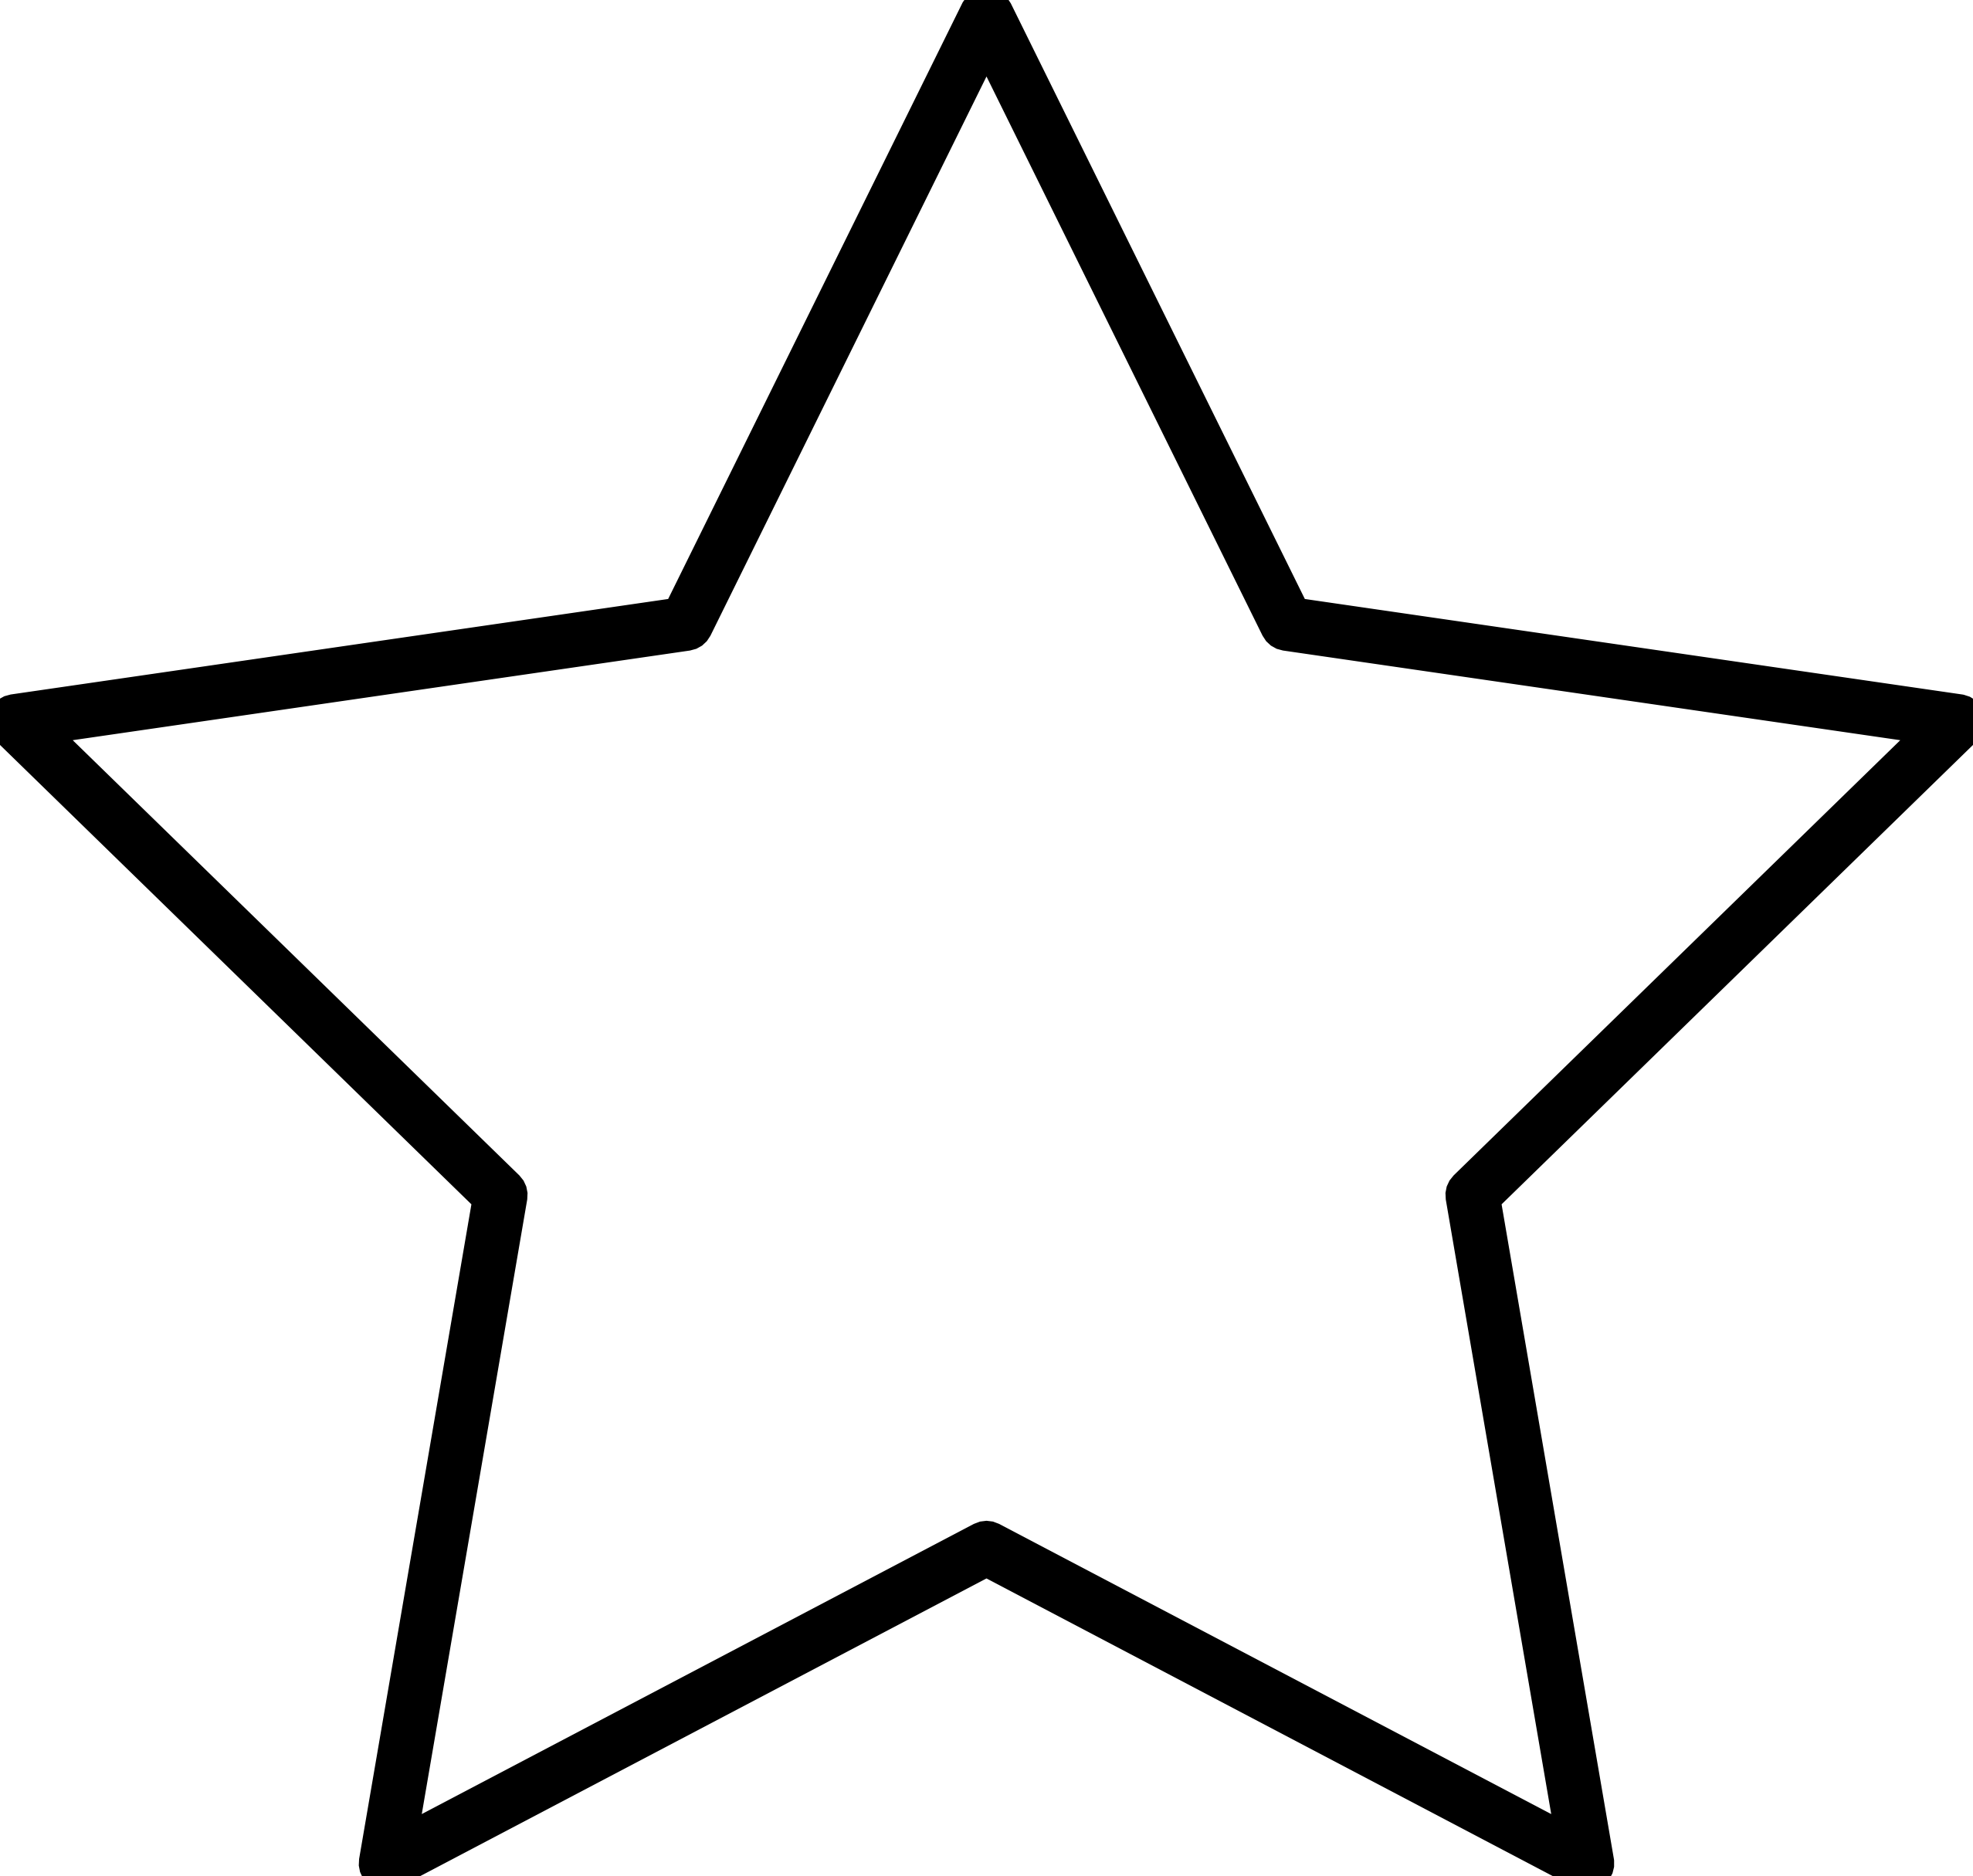 Ornament outline clipart star image free stock Star Of David Silhouette at GetDrawings.com | Free for personal use ... image free stock